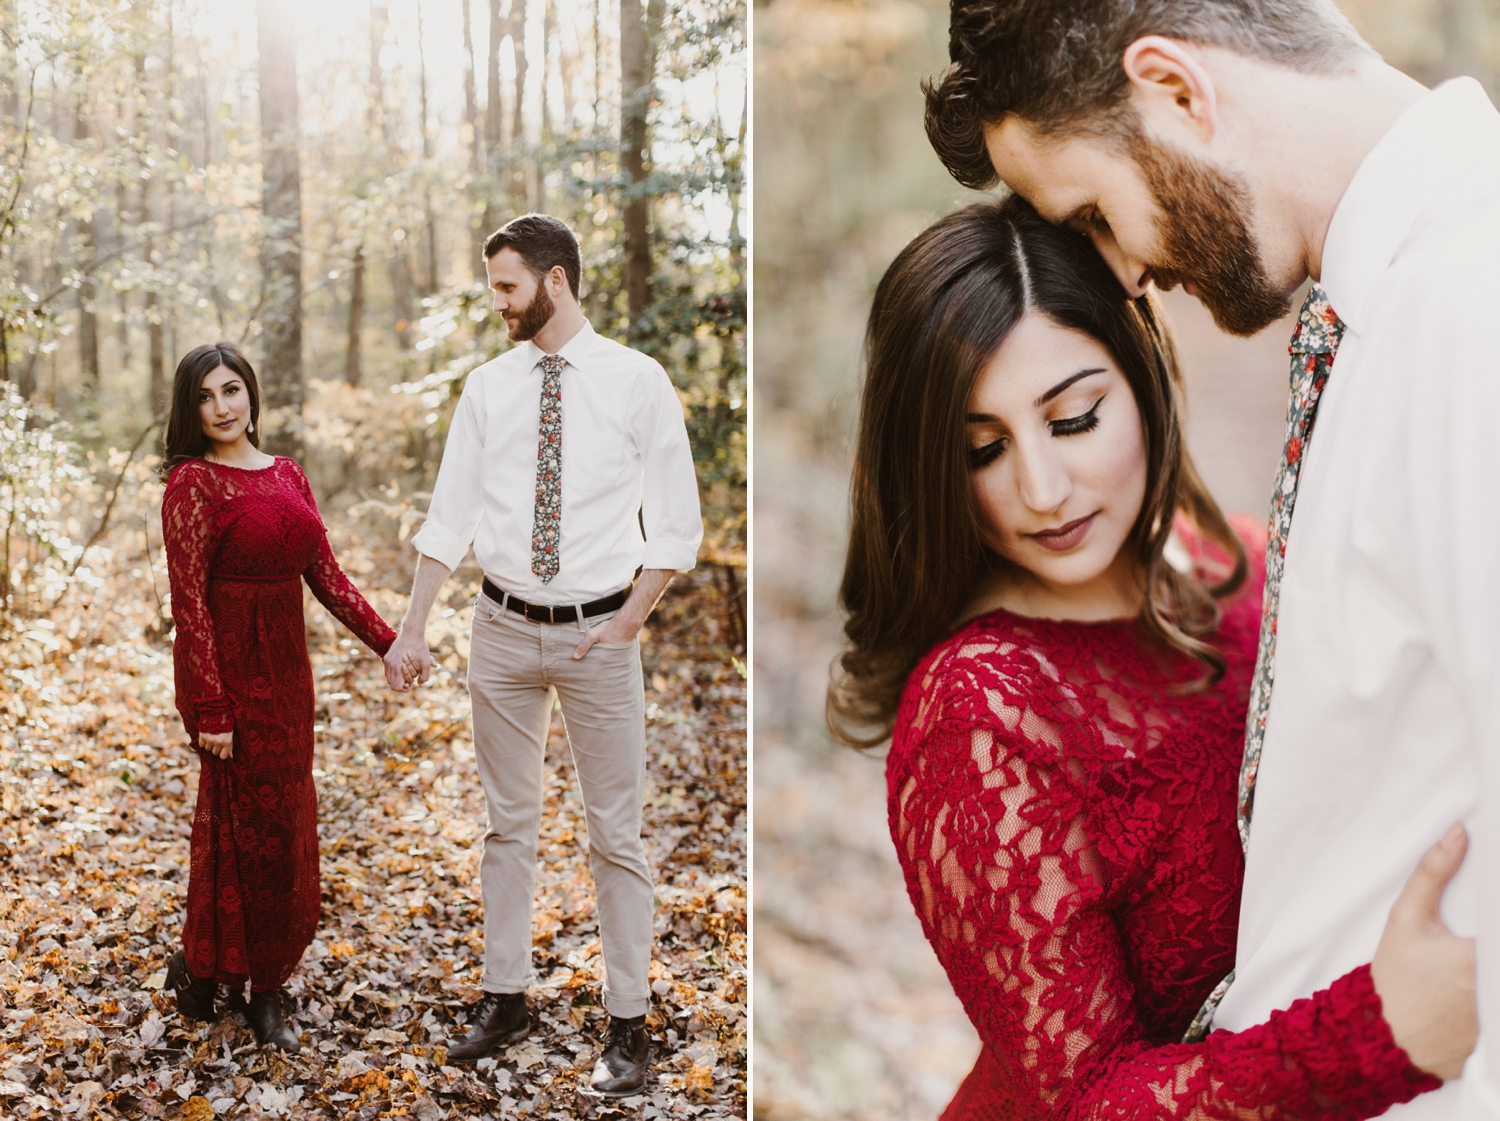 sundas-and-scotts-engagement-9_baltimore-washington-d-c-waterfall-kilgore-engagement-session-maxi-dress-earthy-maryland-wedding-photographer-kate-ann-photography-photo